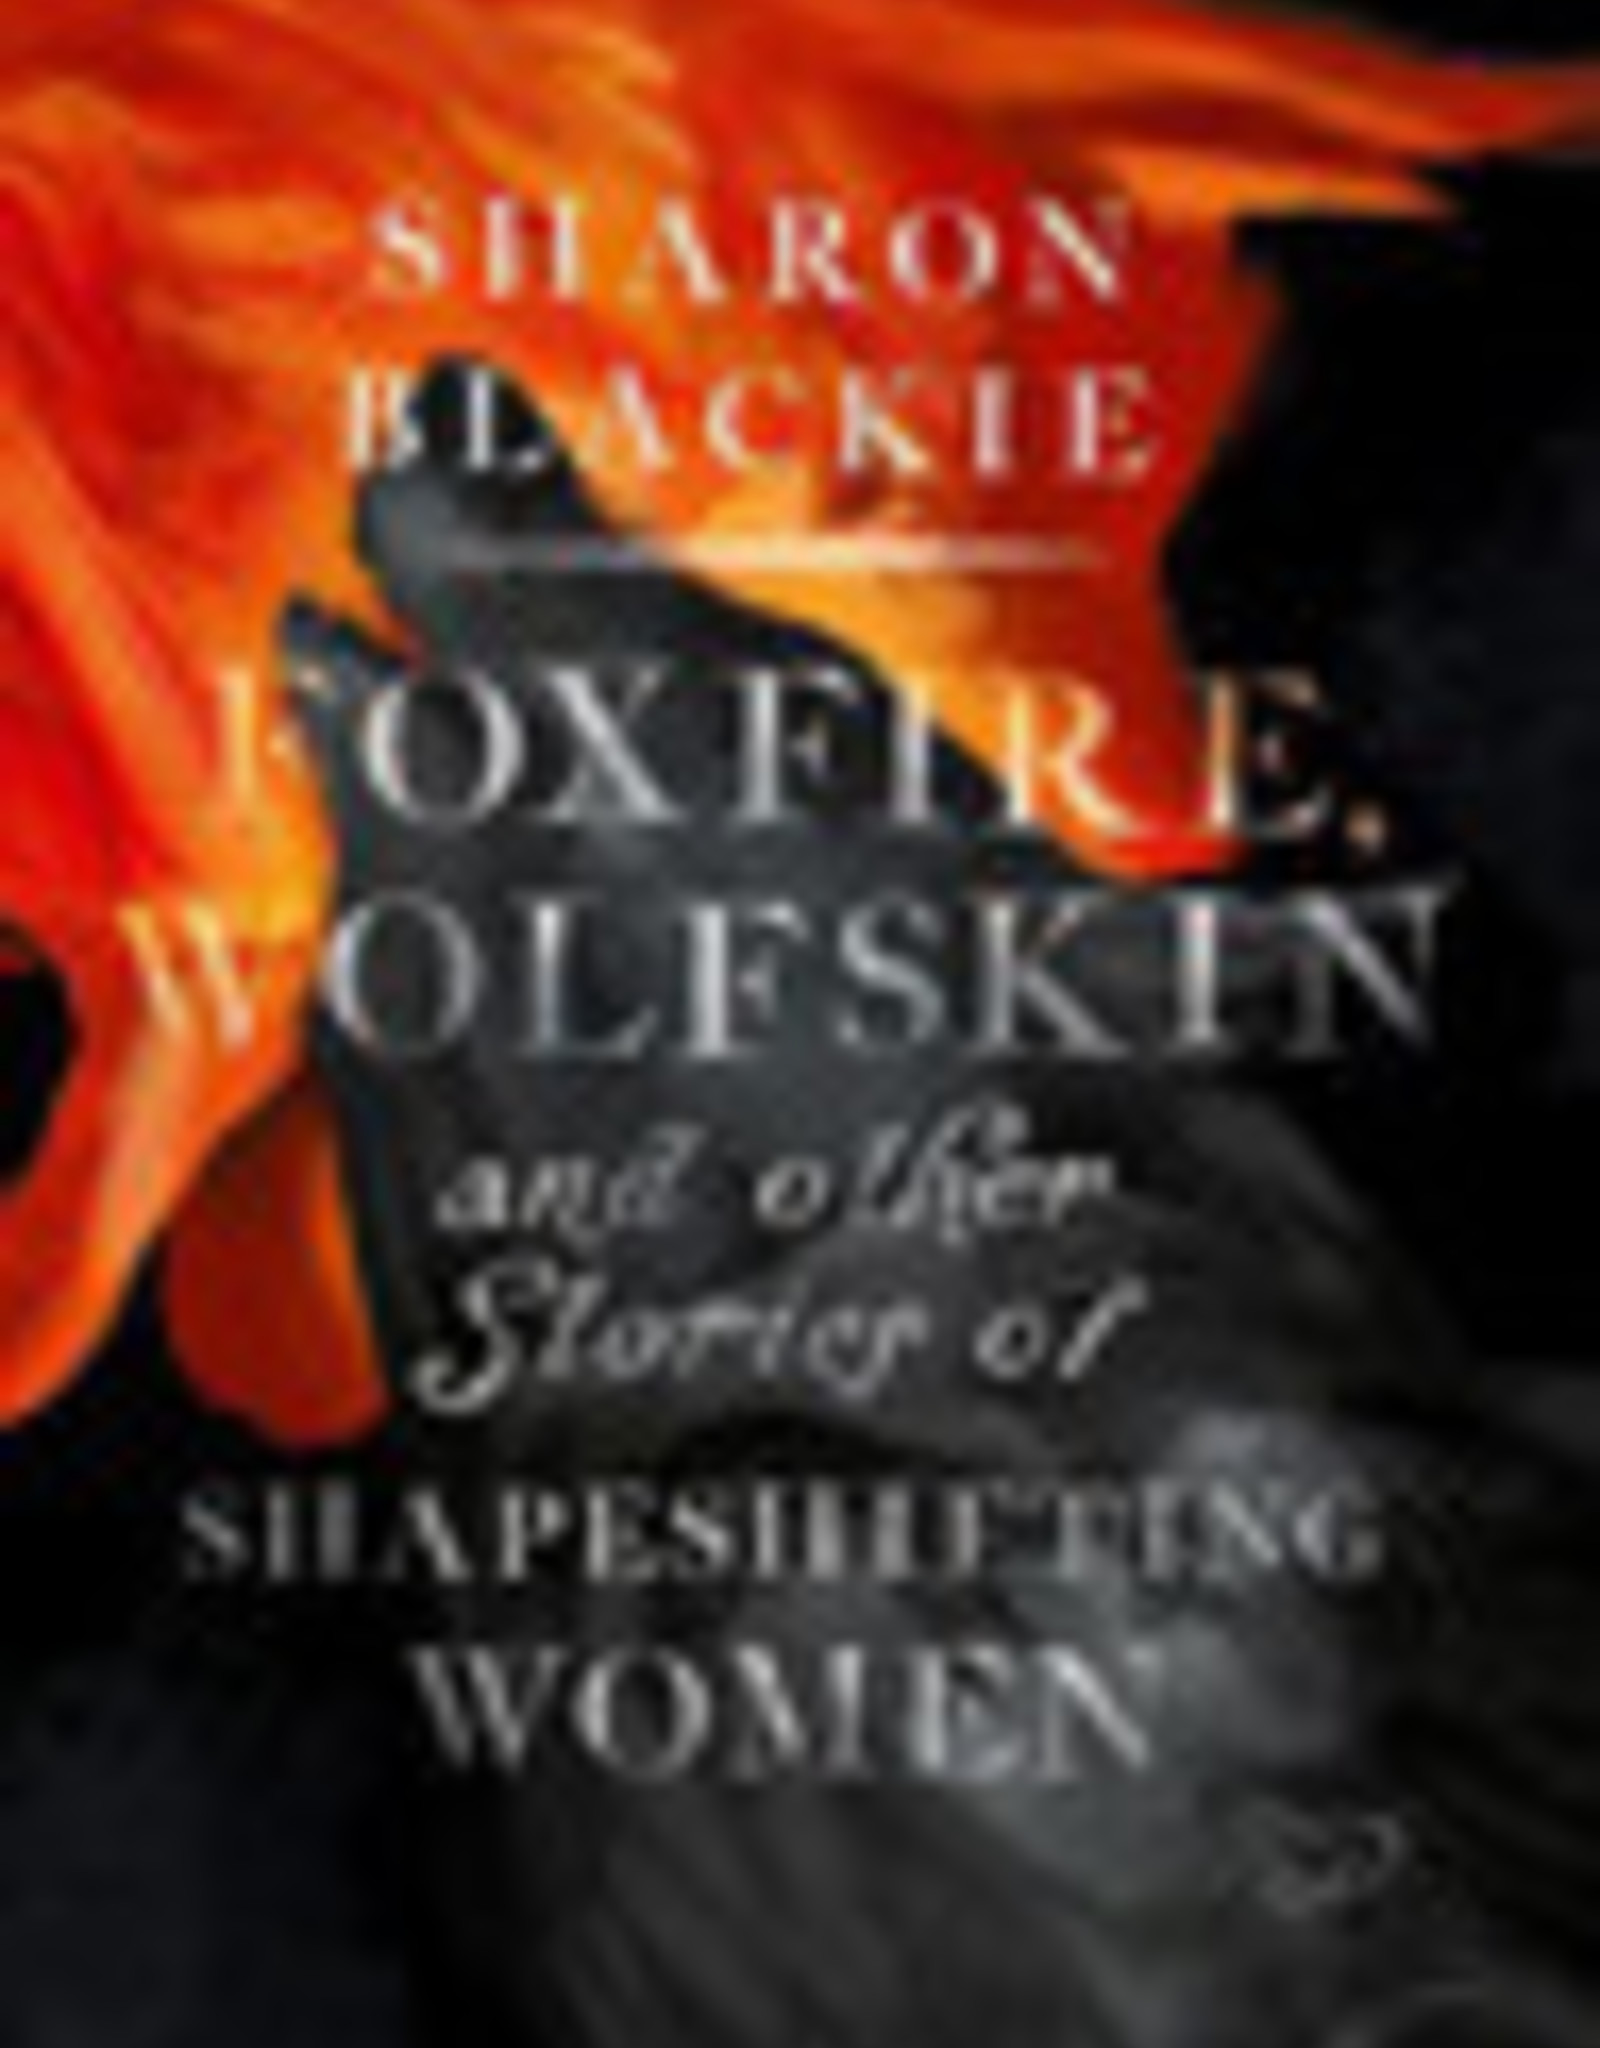 Foxfire, Wolfskin and Other Stories